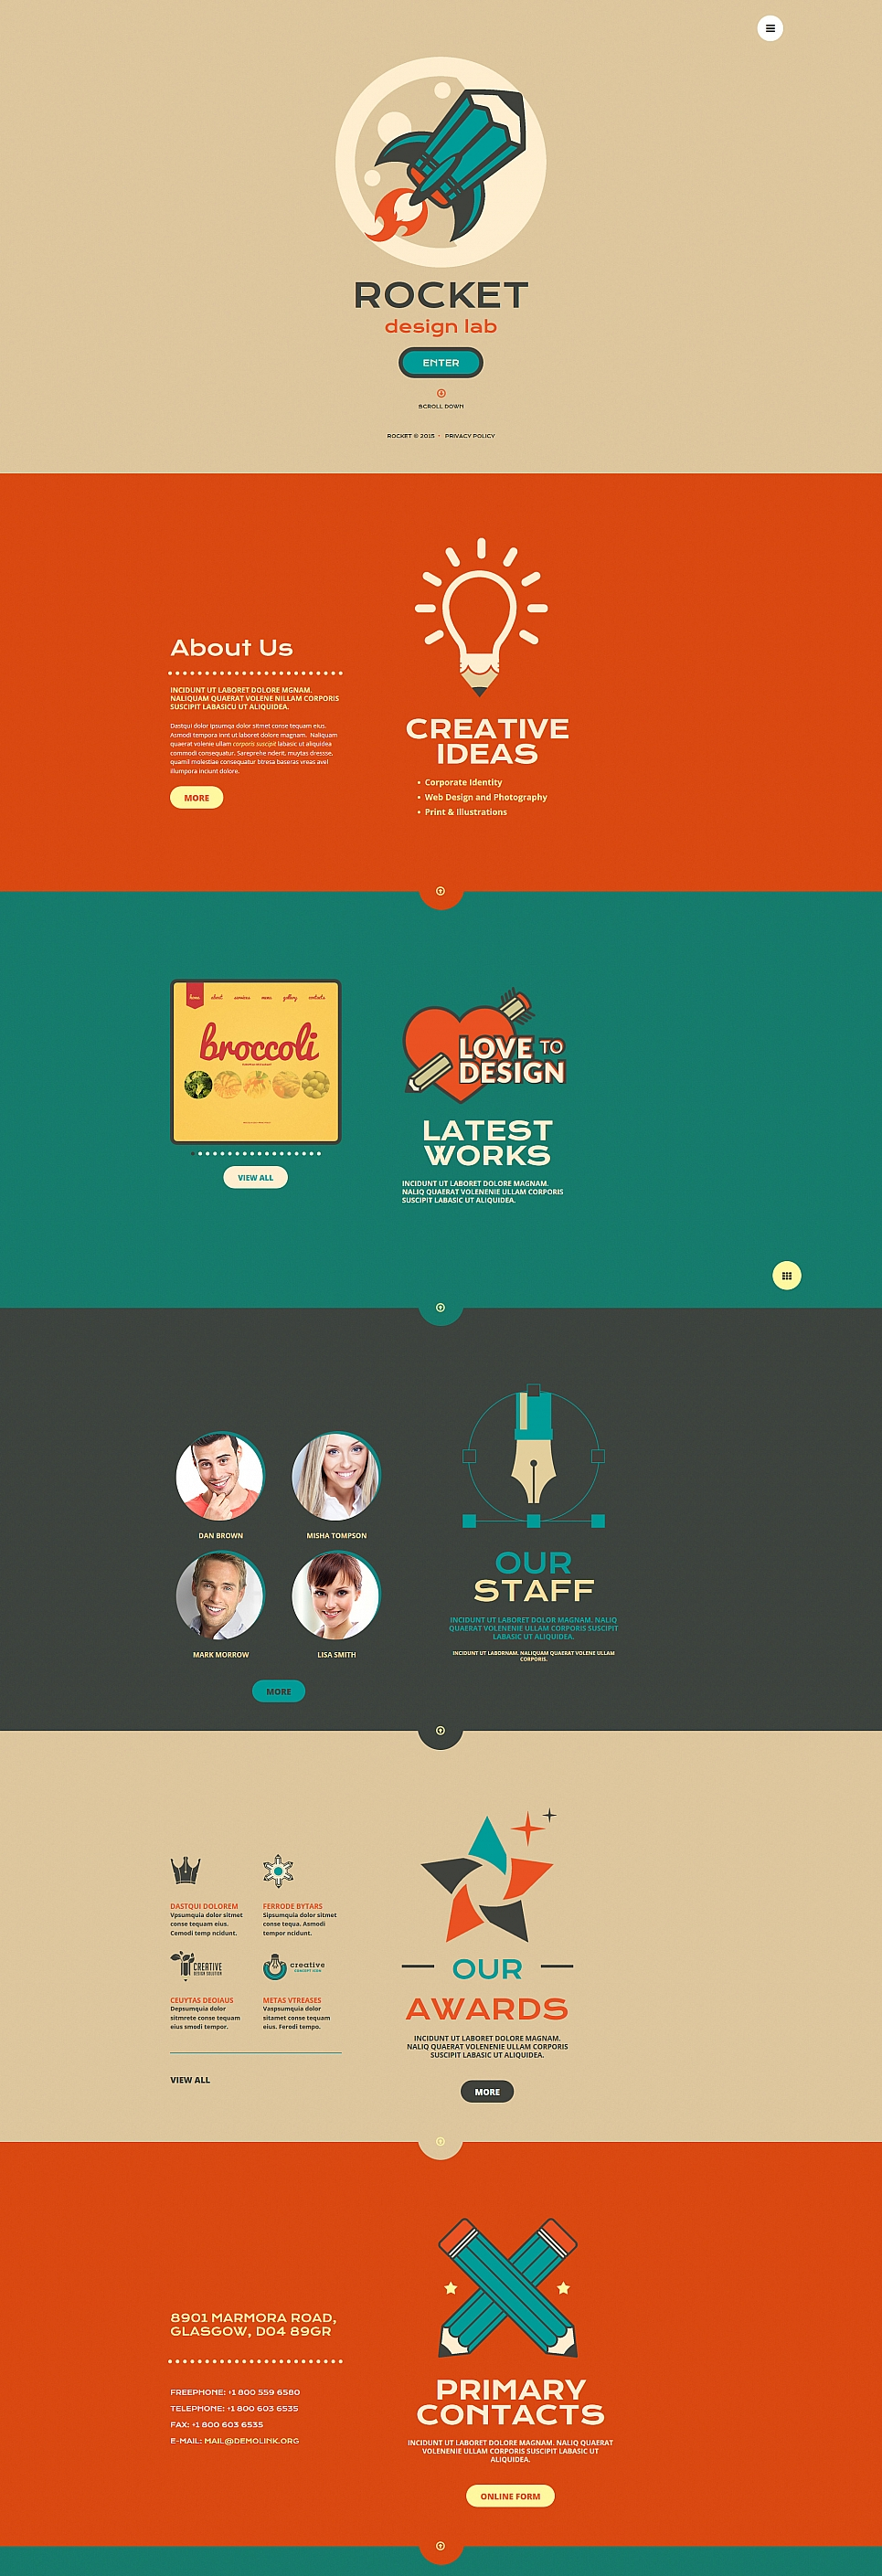 Single-page Theme for Web Design Agency - image